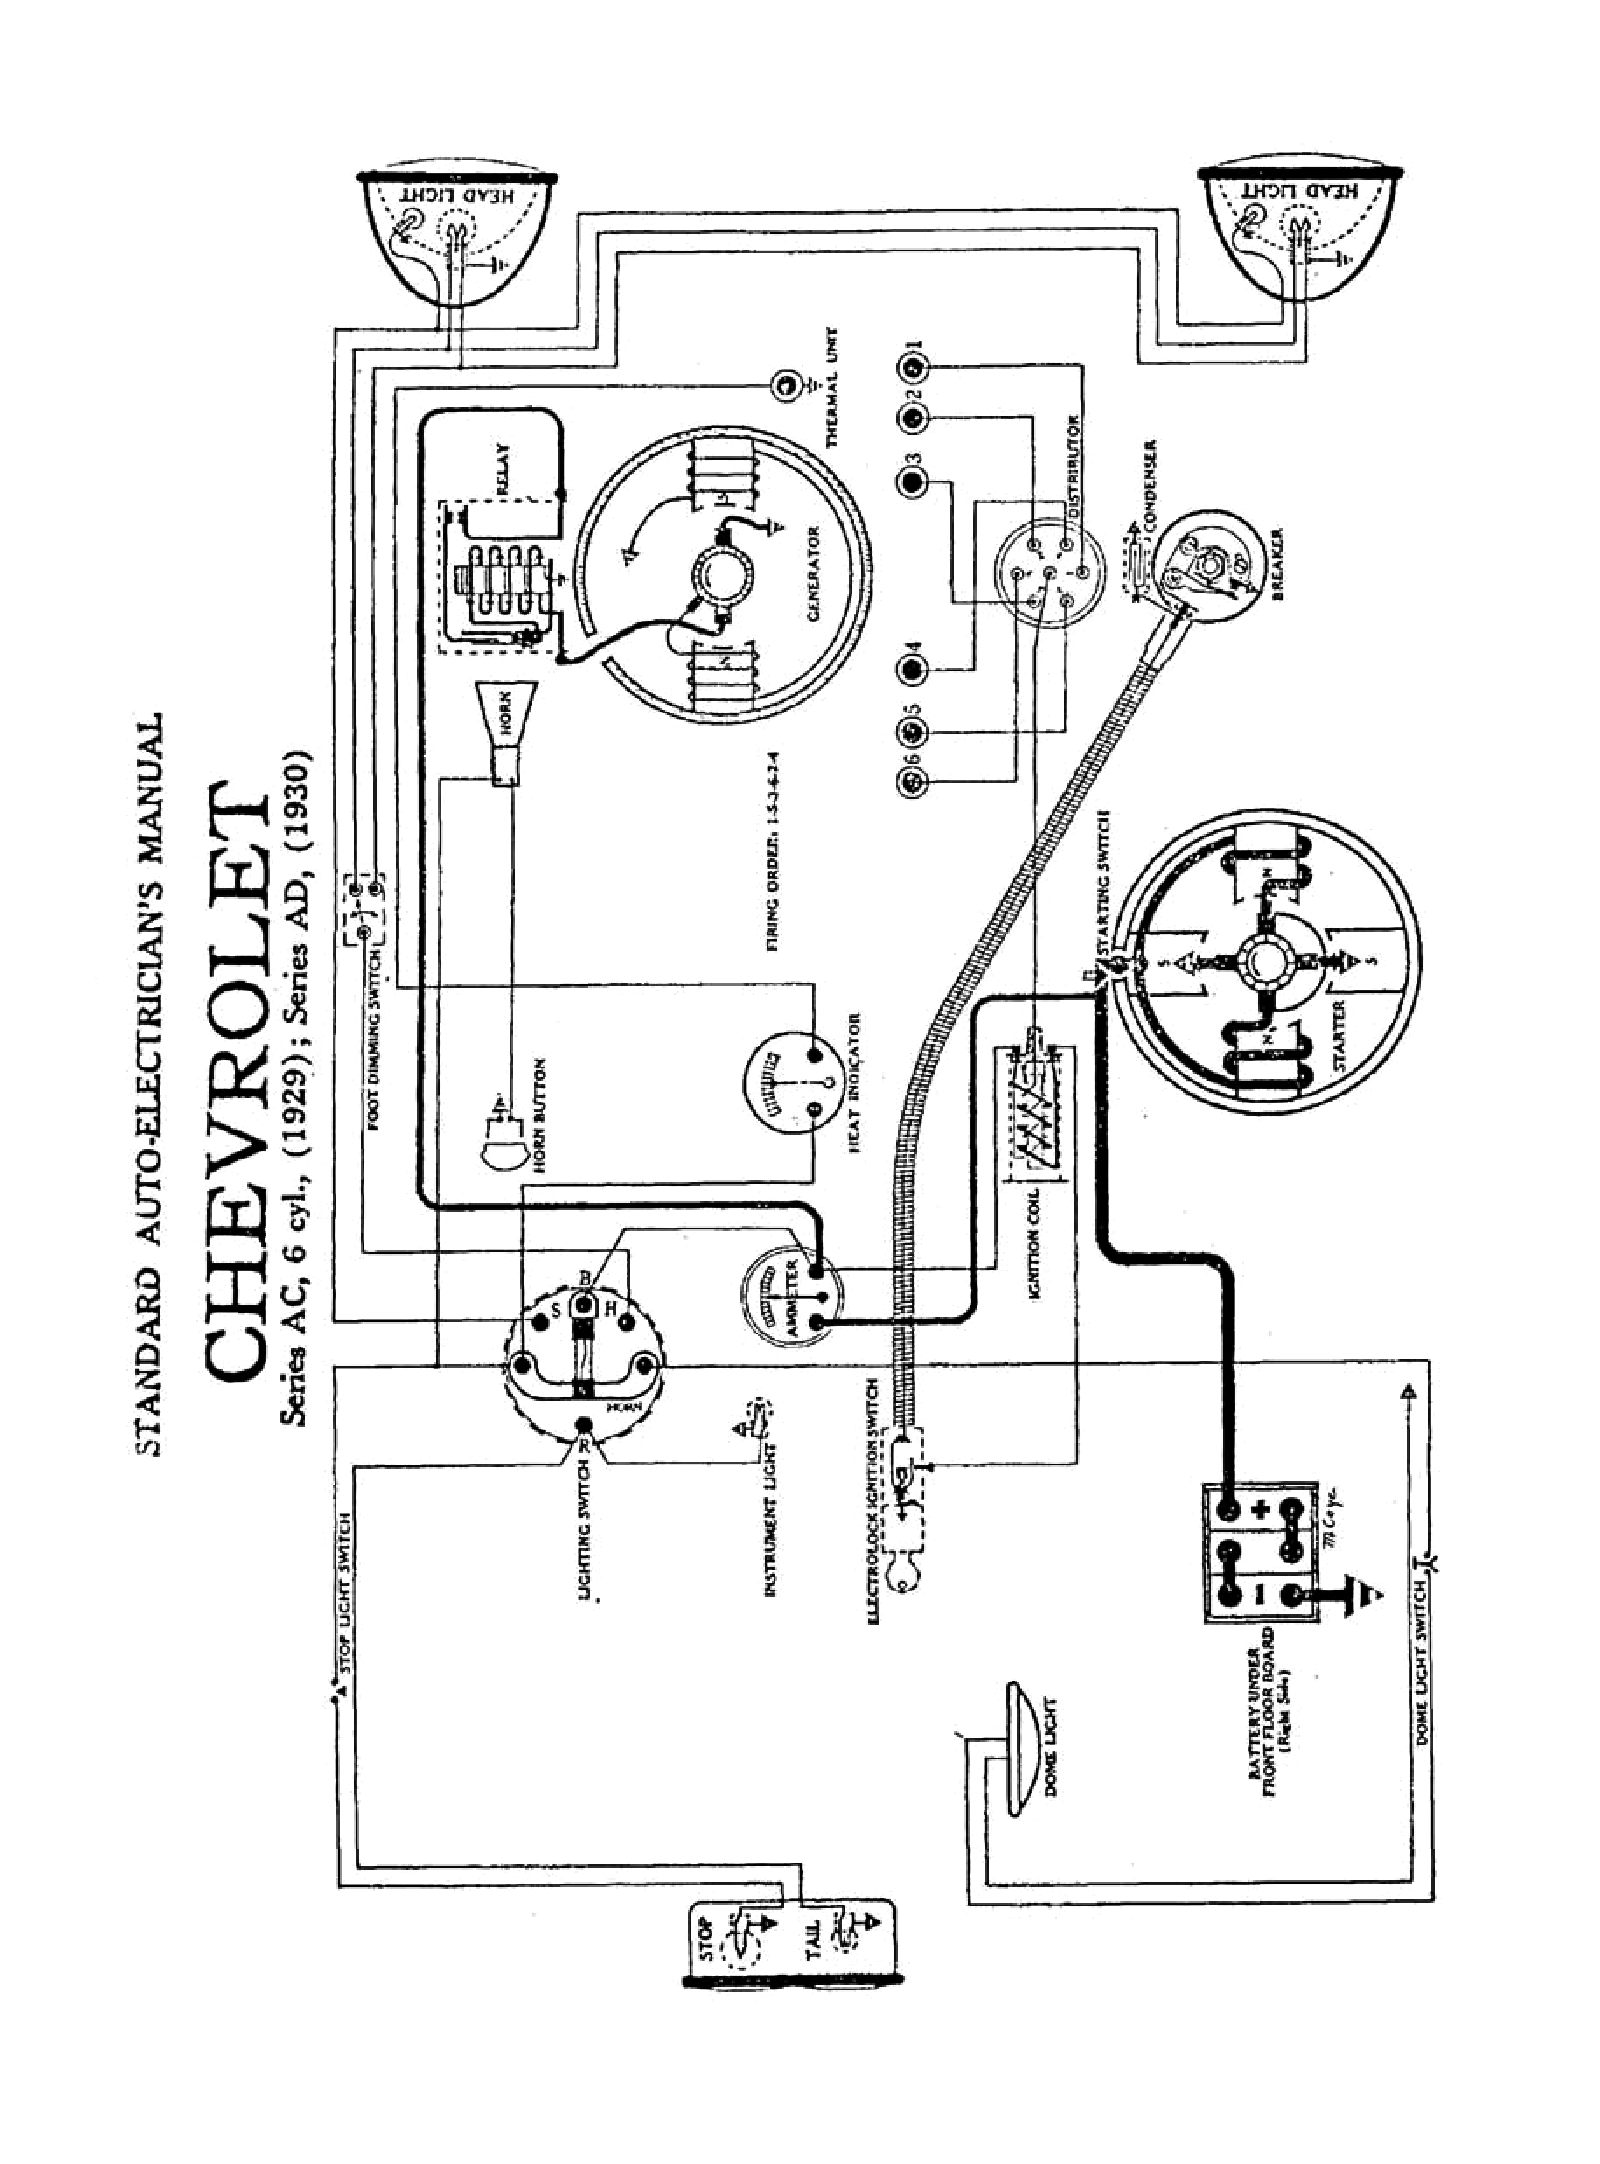 hight resolution of 1931 ford wiring diagram free wiring diagrams schema ford pickup wiring diagrams 1930 ford wiring diagram